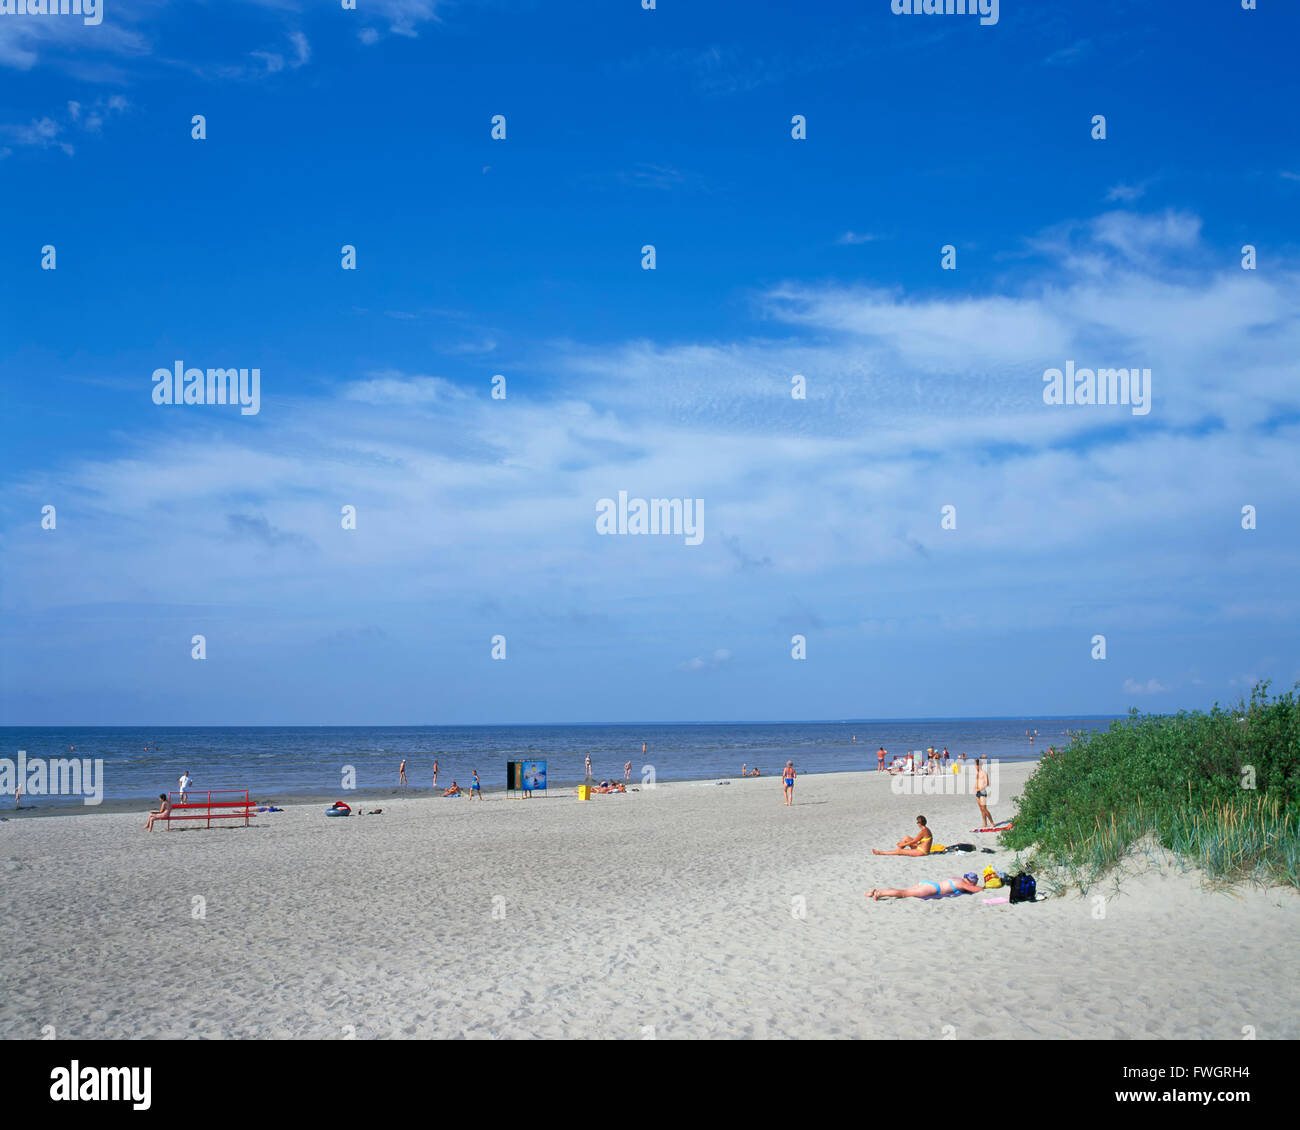 Päru beach, Estonia, Europe - Stock Image